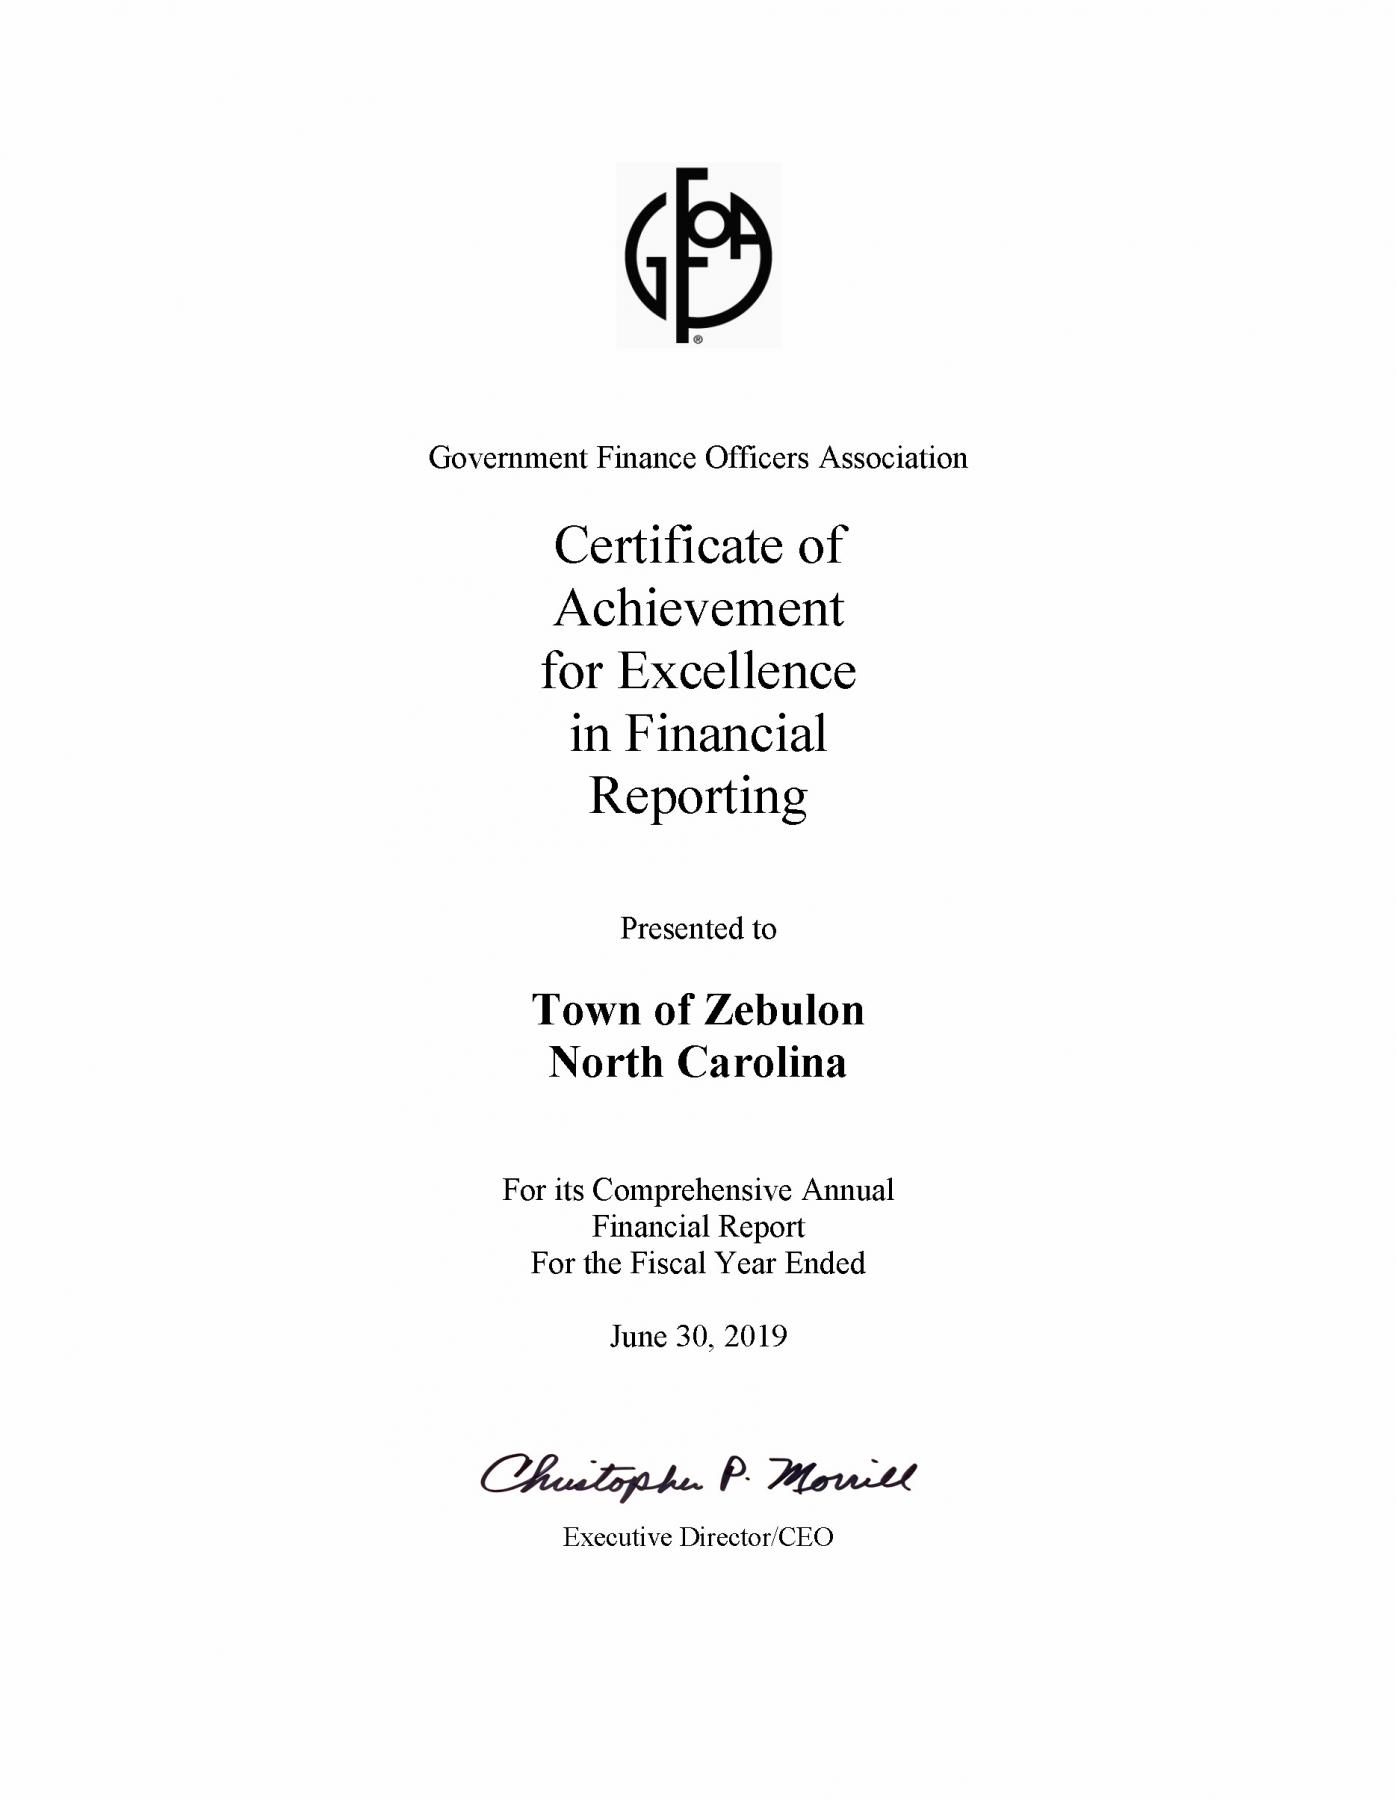 June 30, 2019 Certificate of Excellence in Financial Reporting